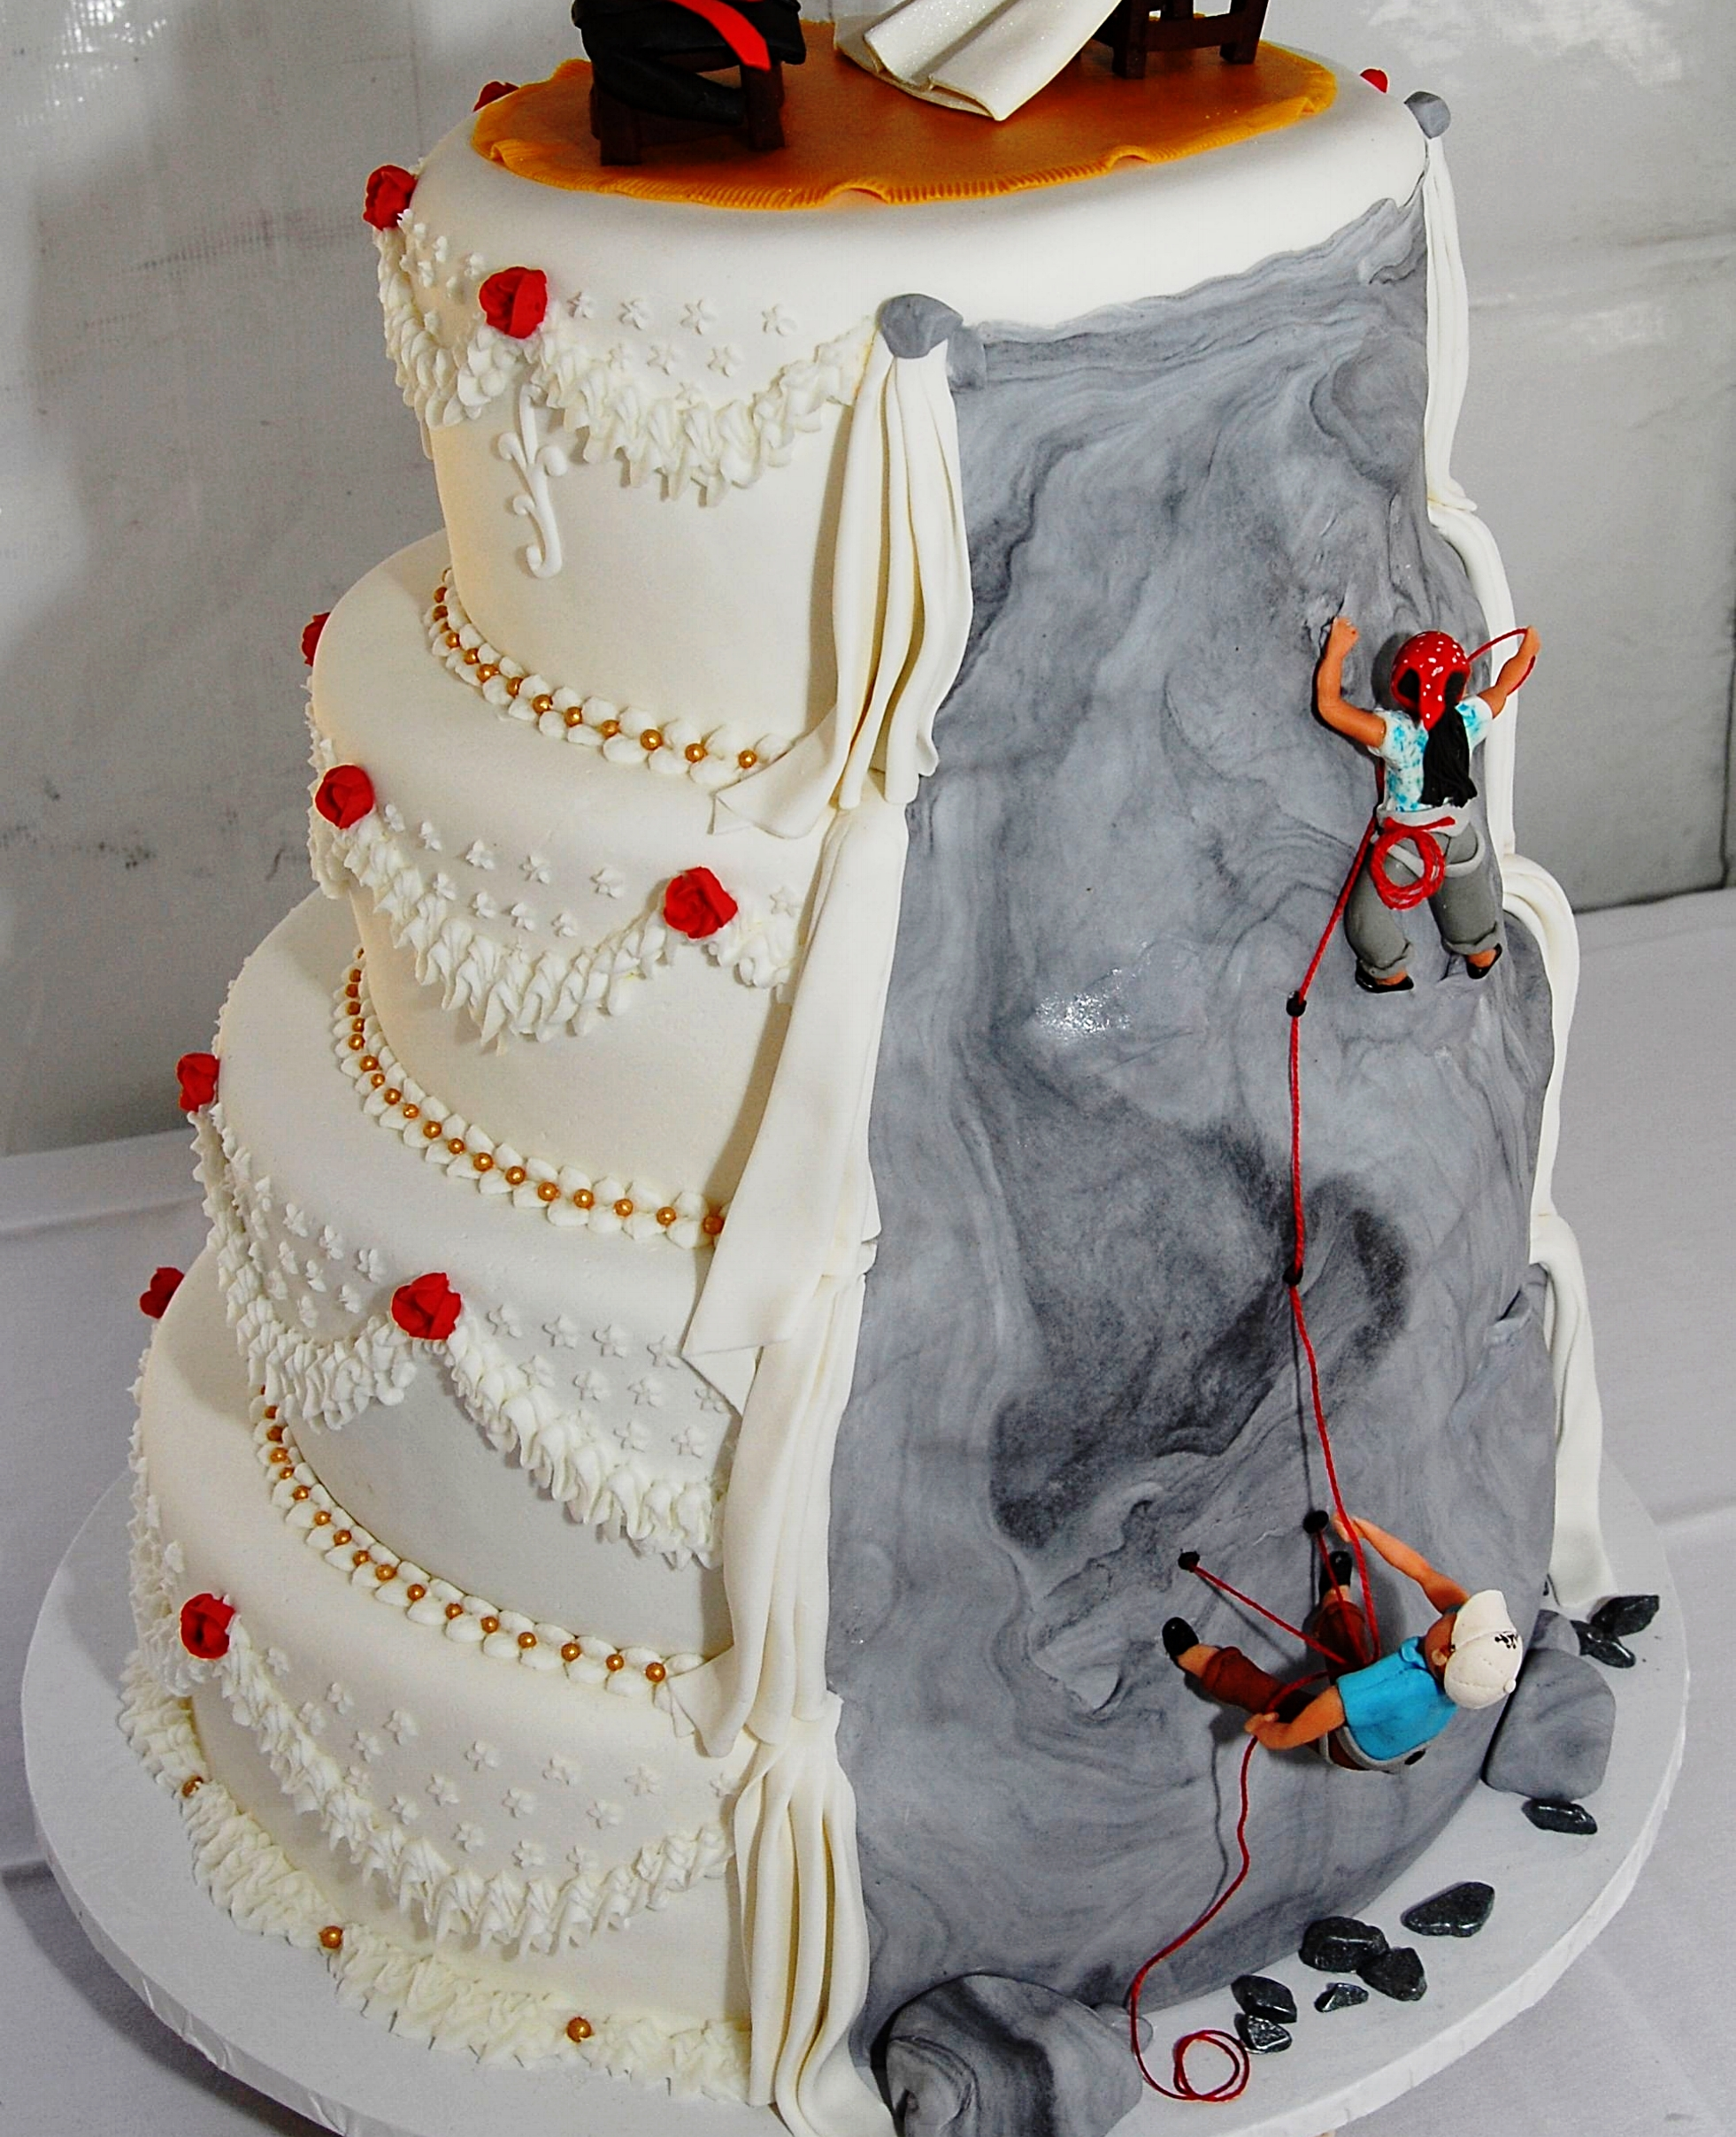 Cake Image from  Cake Central  and it's a wedding cake not a birthday cake.There is a whole  Pinterest  page of climbing themed cakes - two of our favorite things.